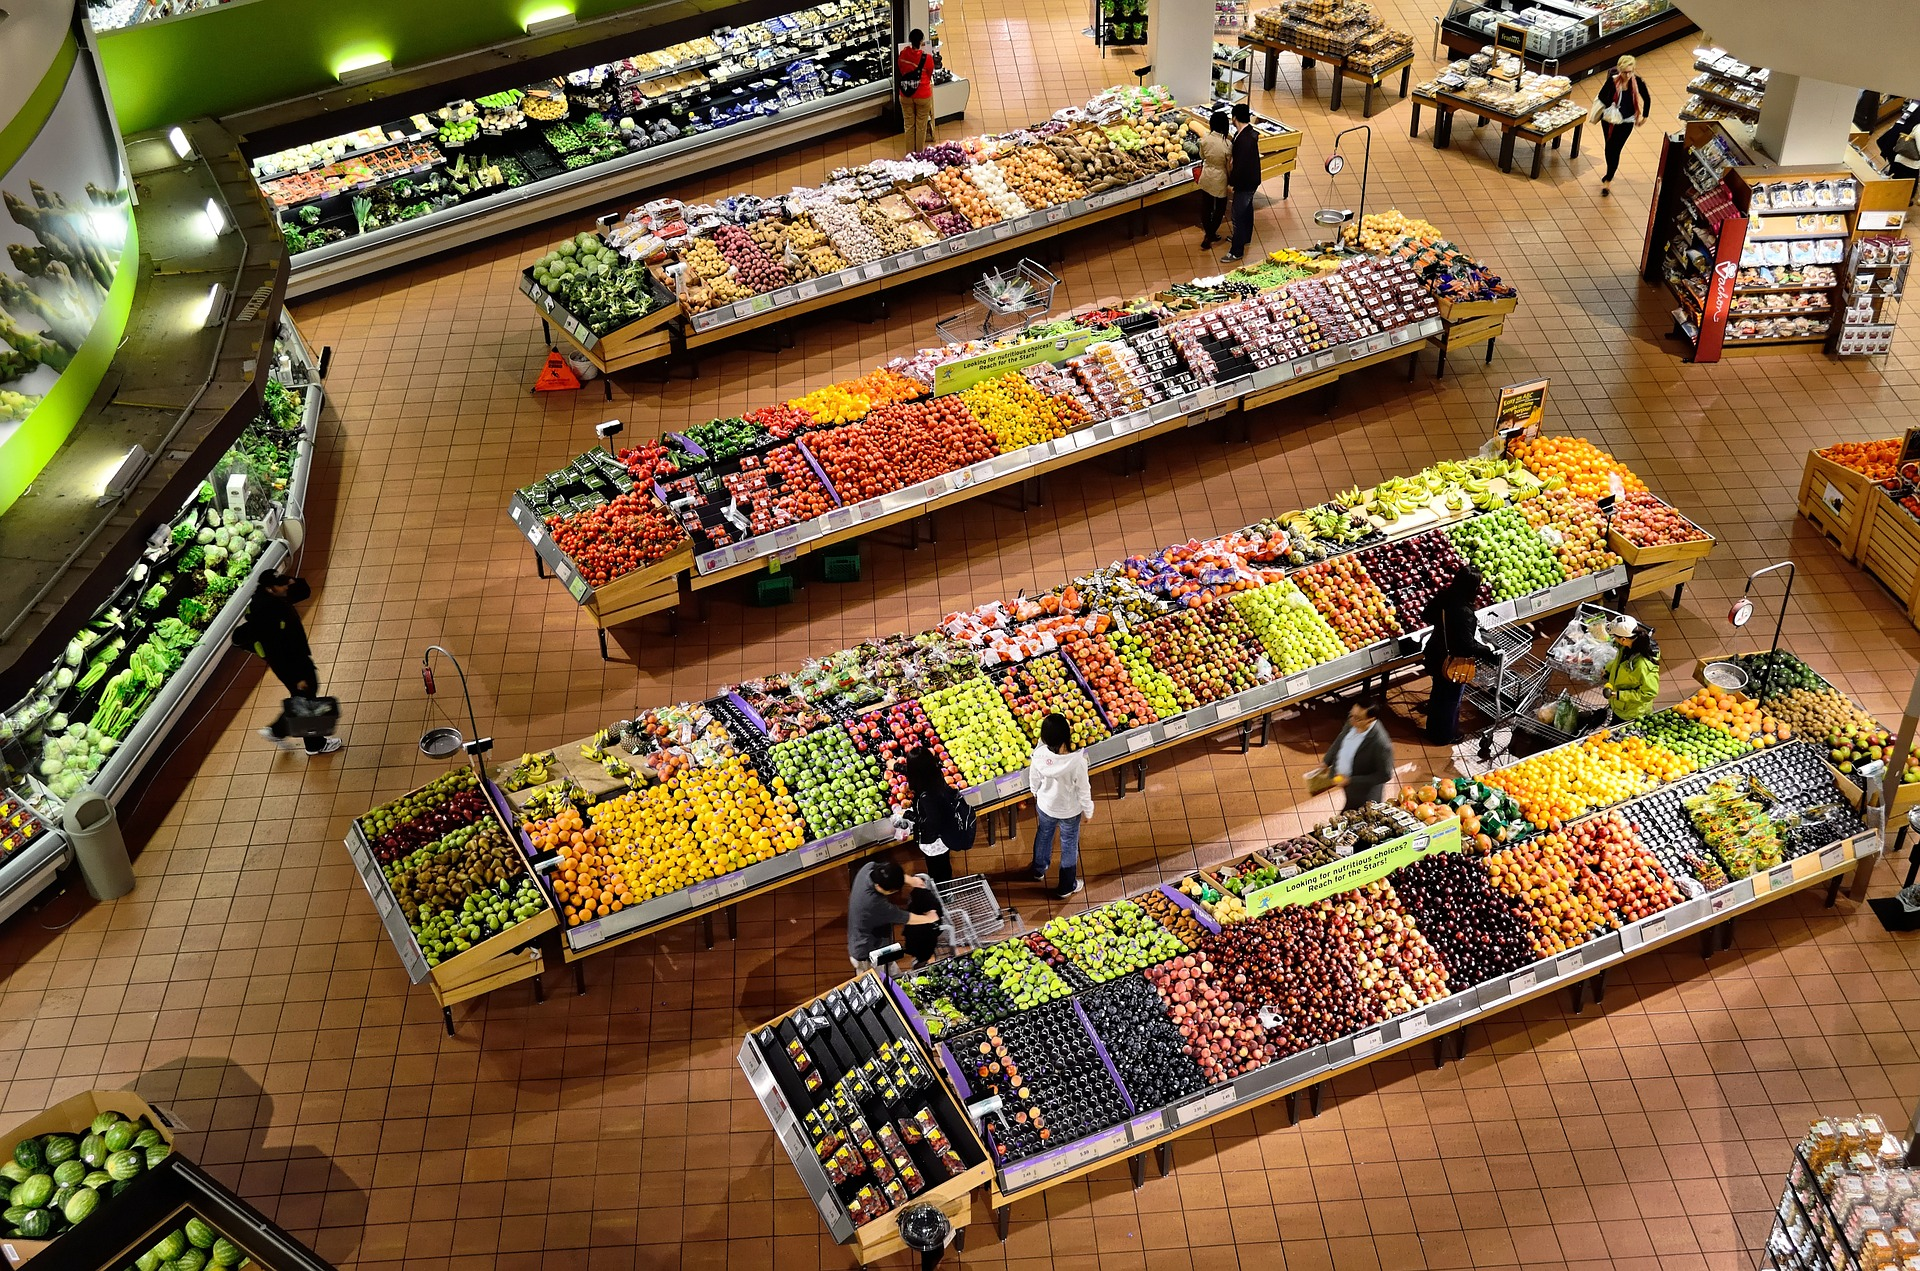 Why led lighting is the best lighting choice for grocery stores